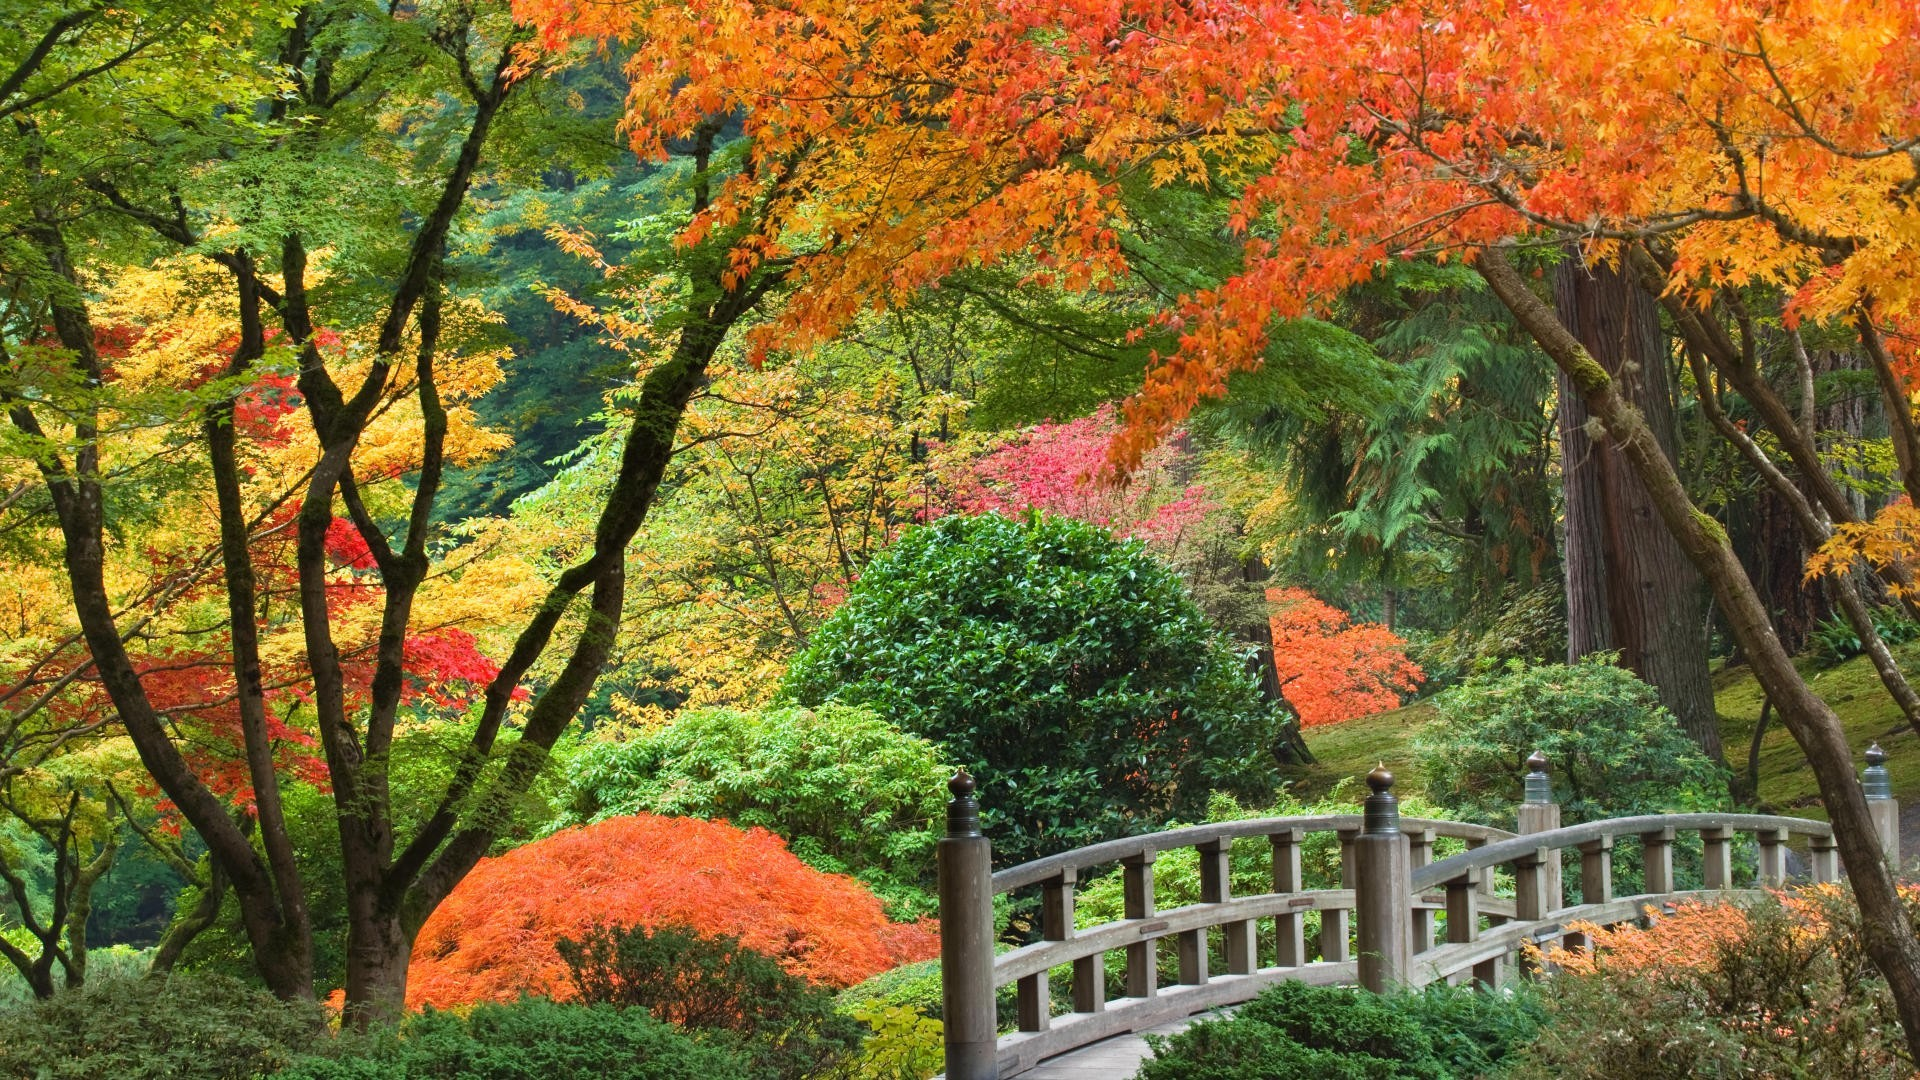 Japanese garden wallpaper 3379 1920x1080